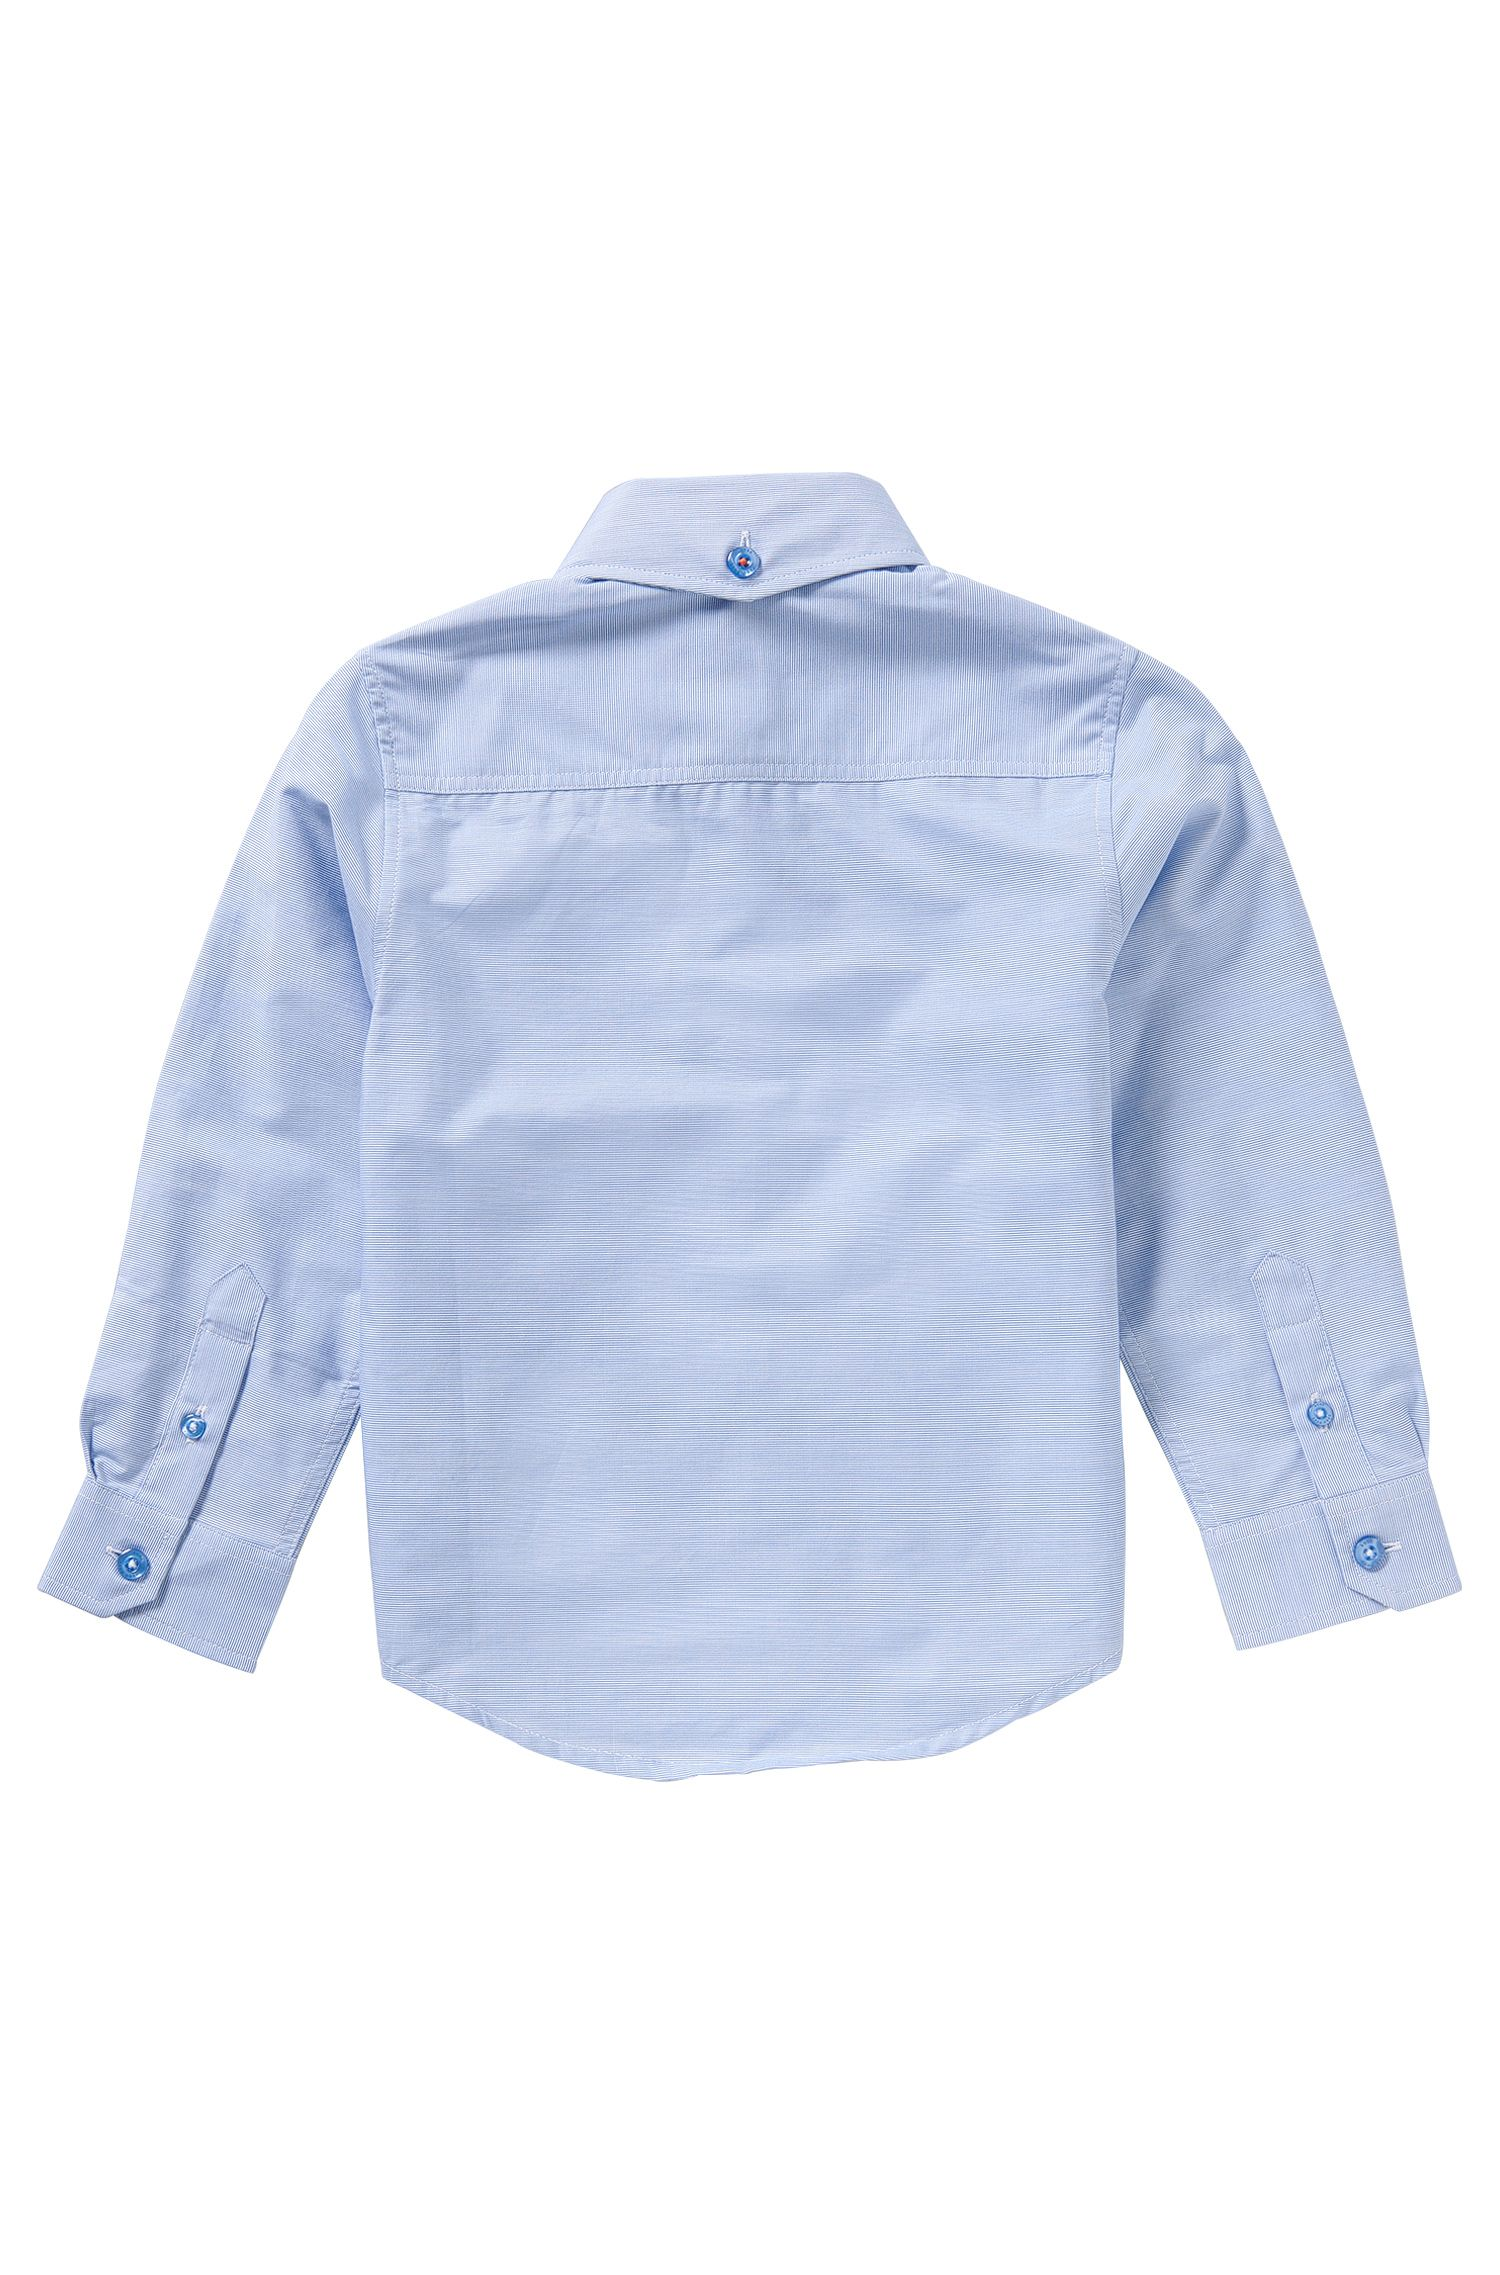 Striped kids' shirt in cotton with breast pocket: 'J25950'